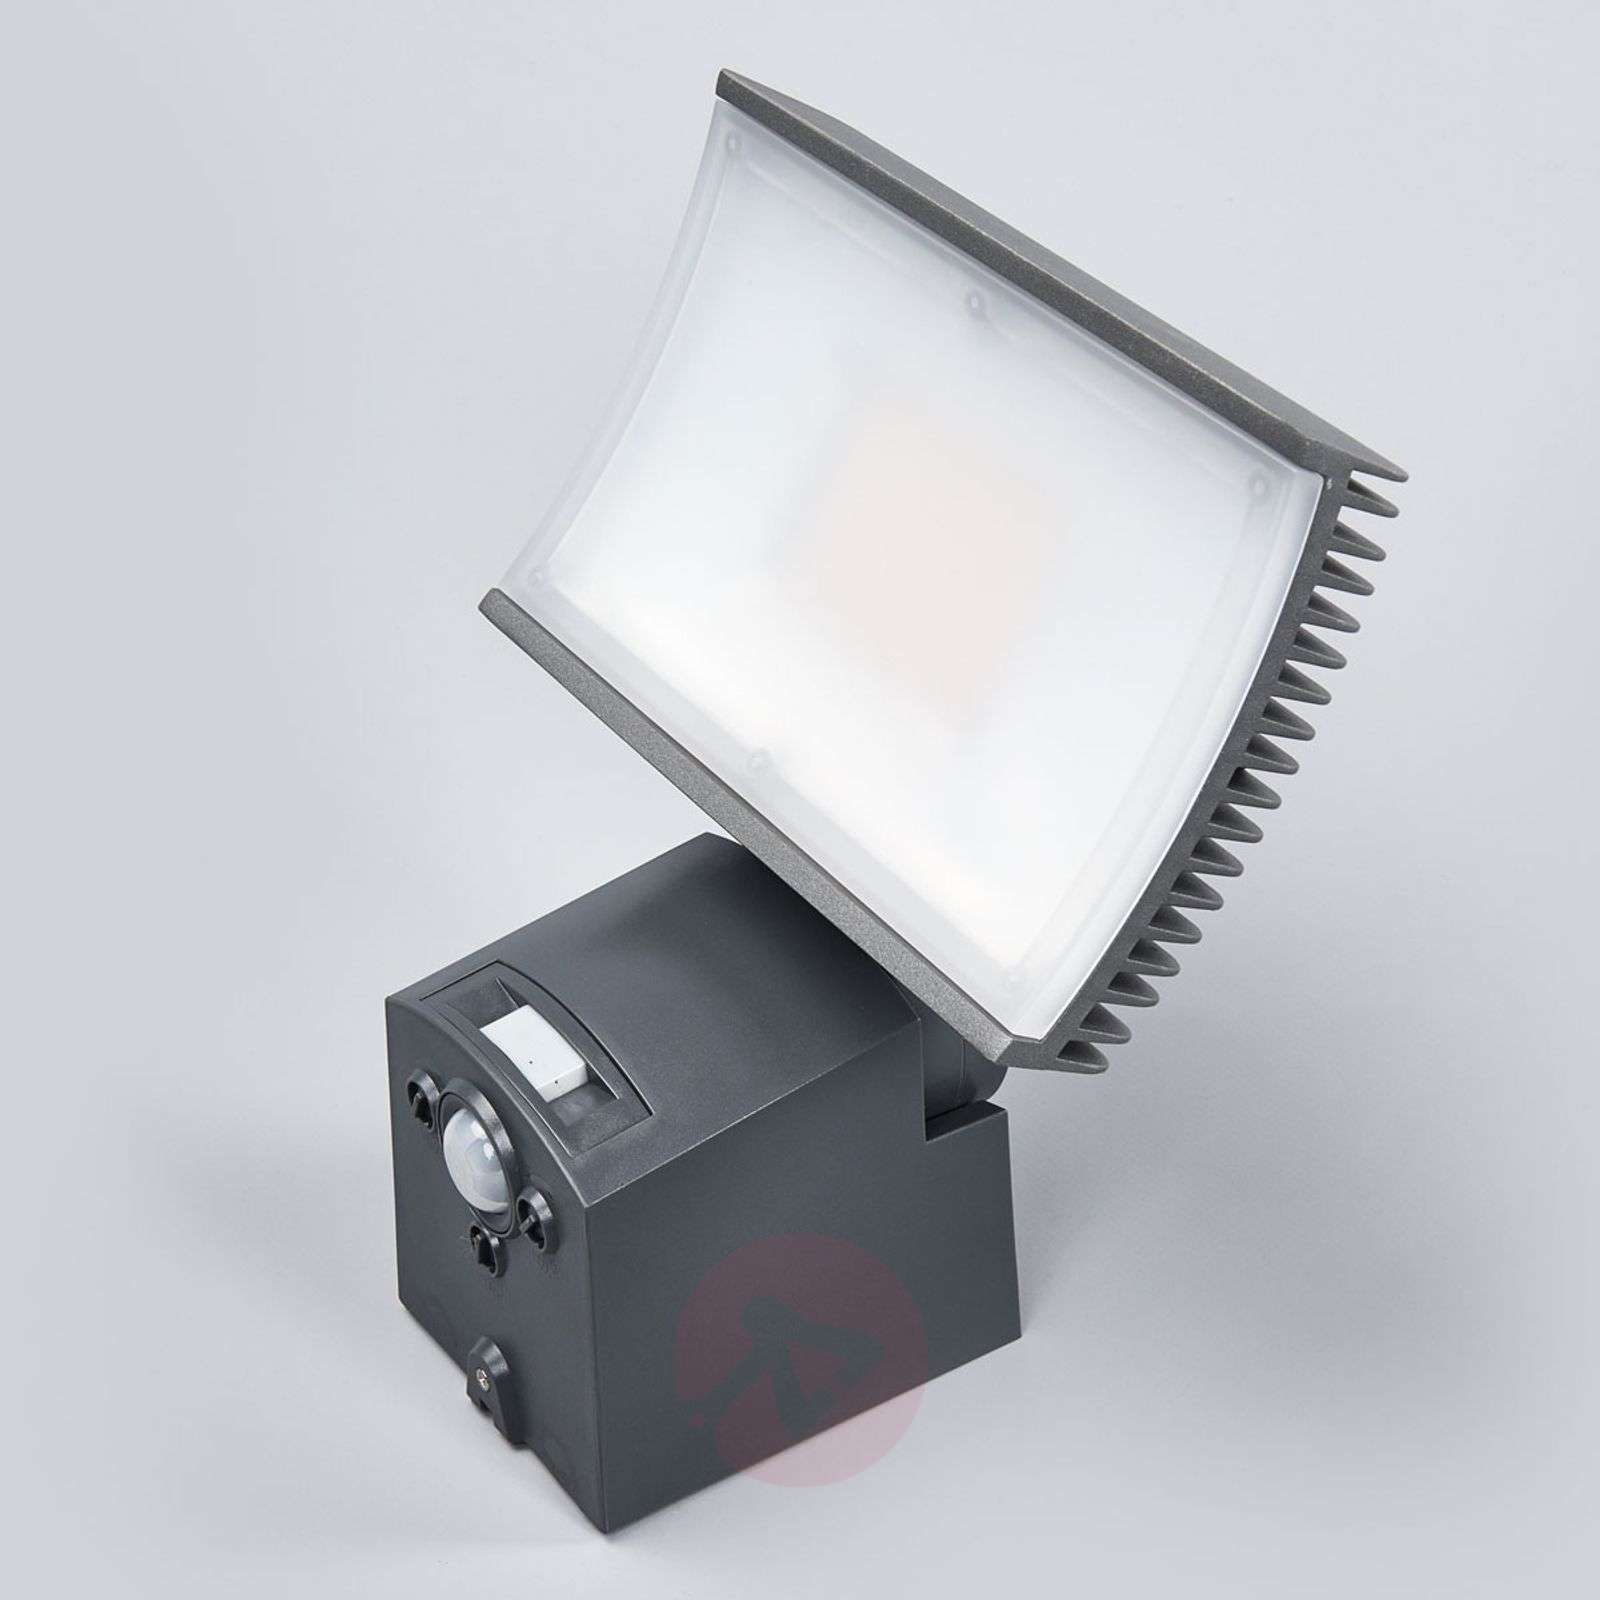 Led outdoor wall lamp floodlight w ir sensor lights grey led outdoor wall lamp floodlight w ir sensor 7261180 01 aloadofball Image collections